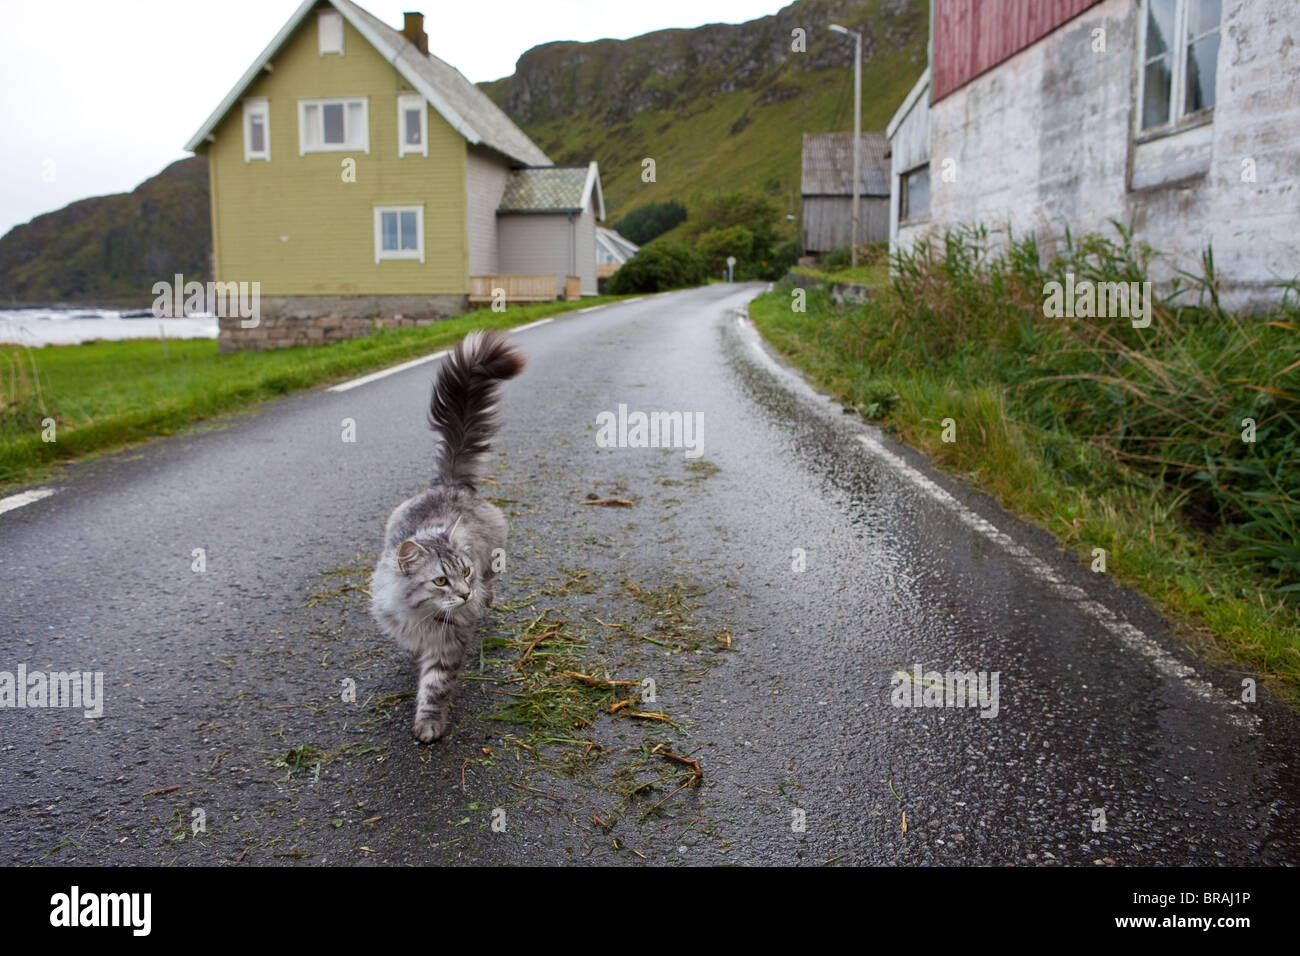 Domestic cat living in the small community Goksøyr on the island Runde on the west coast of Norway. - Stock Image